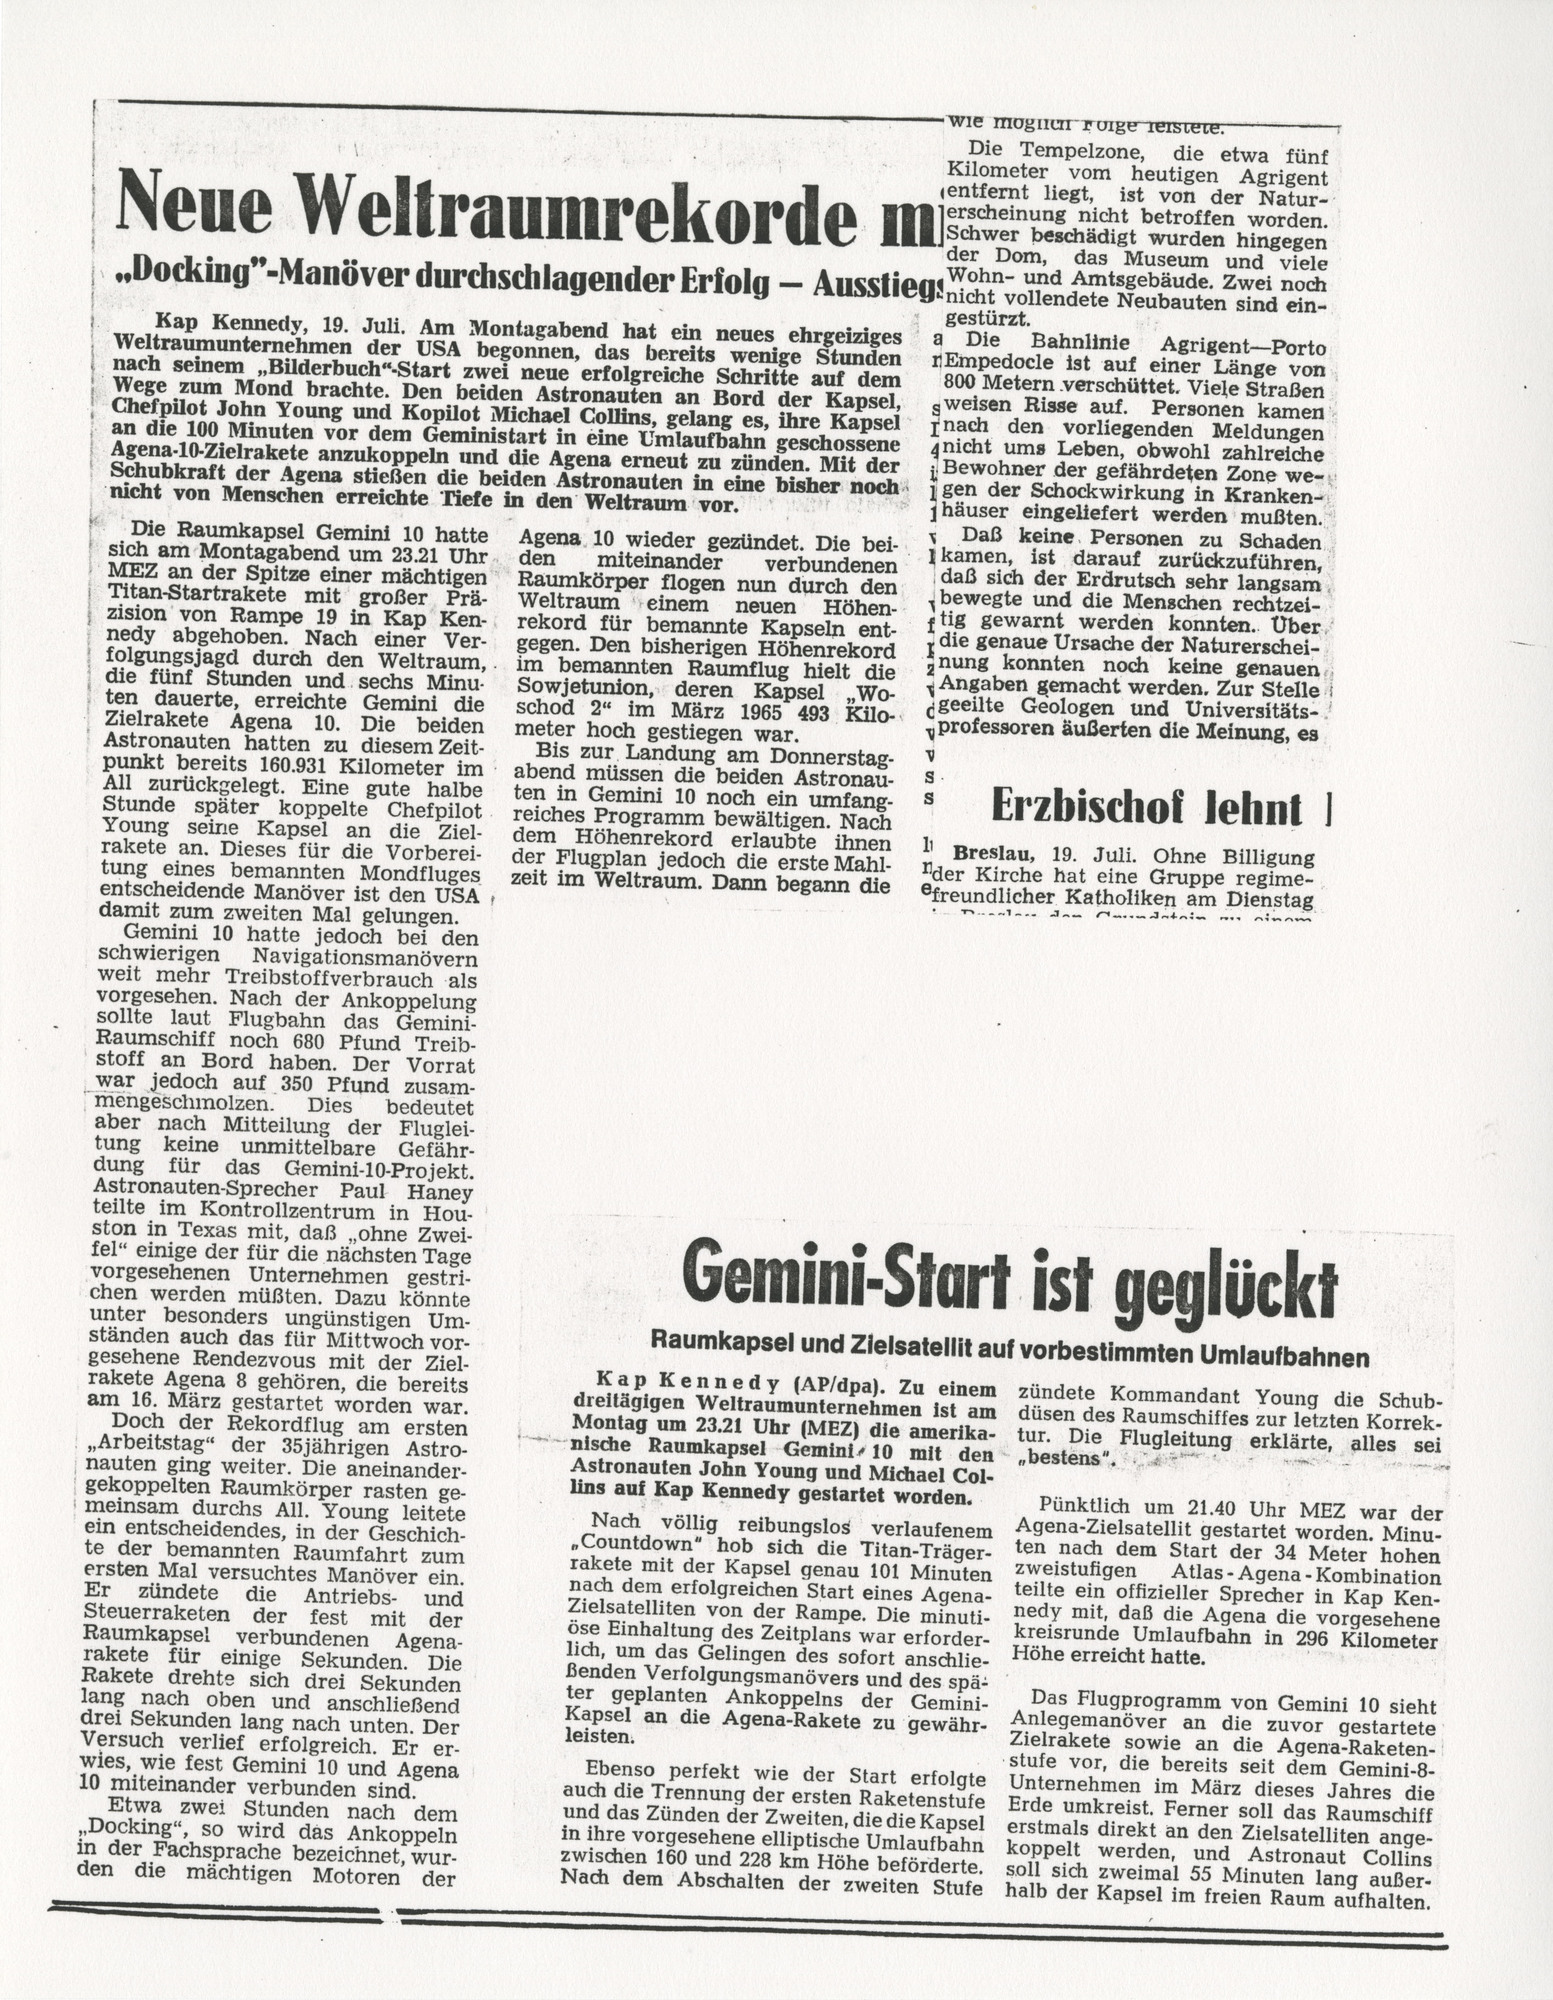 http://spec.lib.vt.edu/pickup/Omeka_upload/Ms1989-029_B07_F3_Clippings_1966_0719_03.jpg